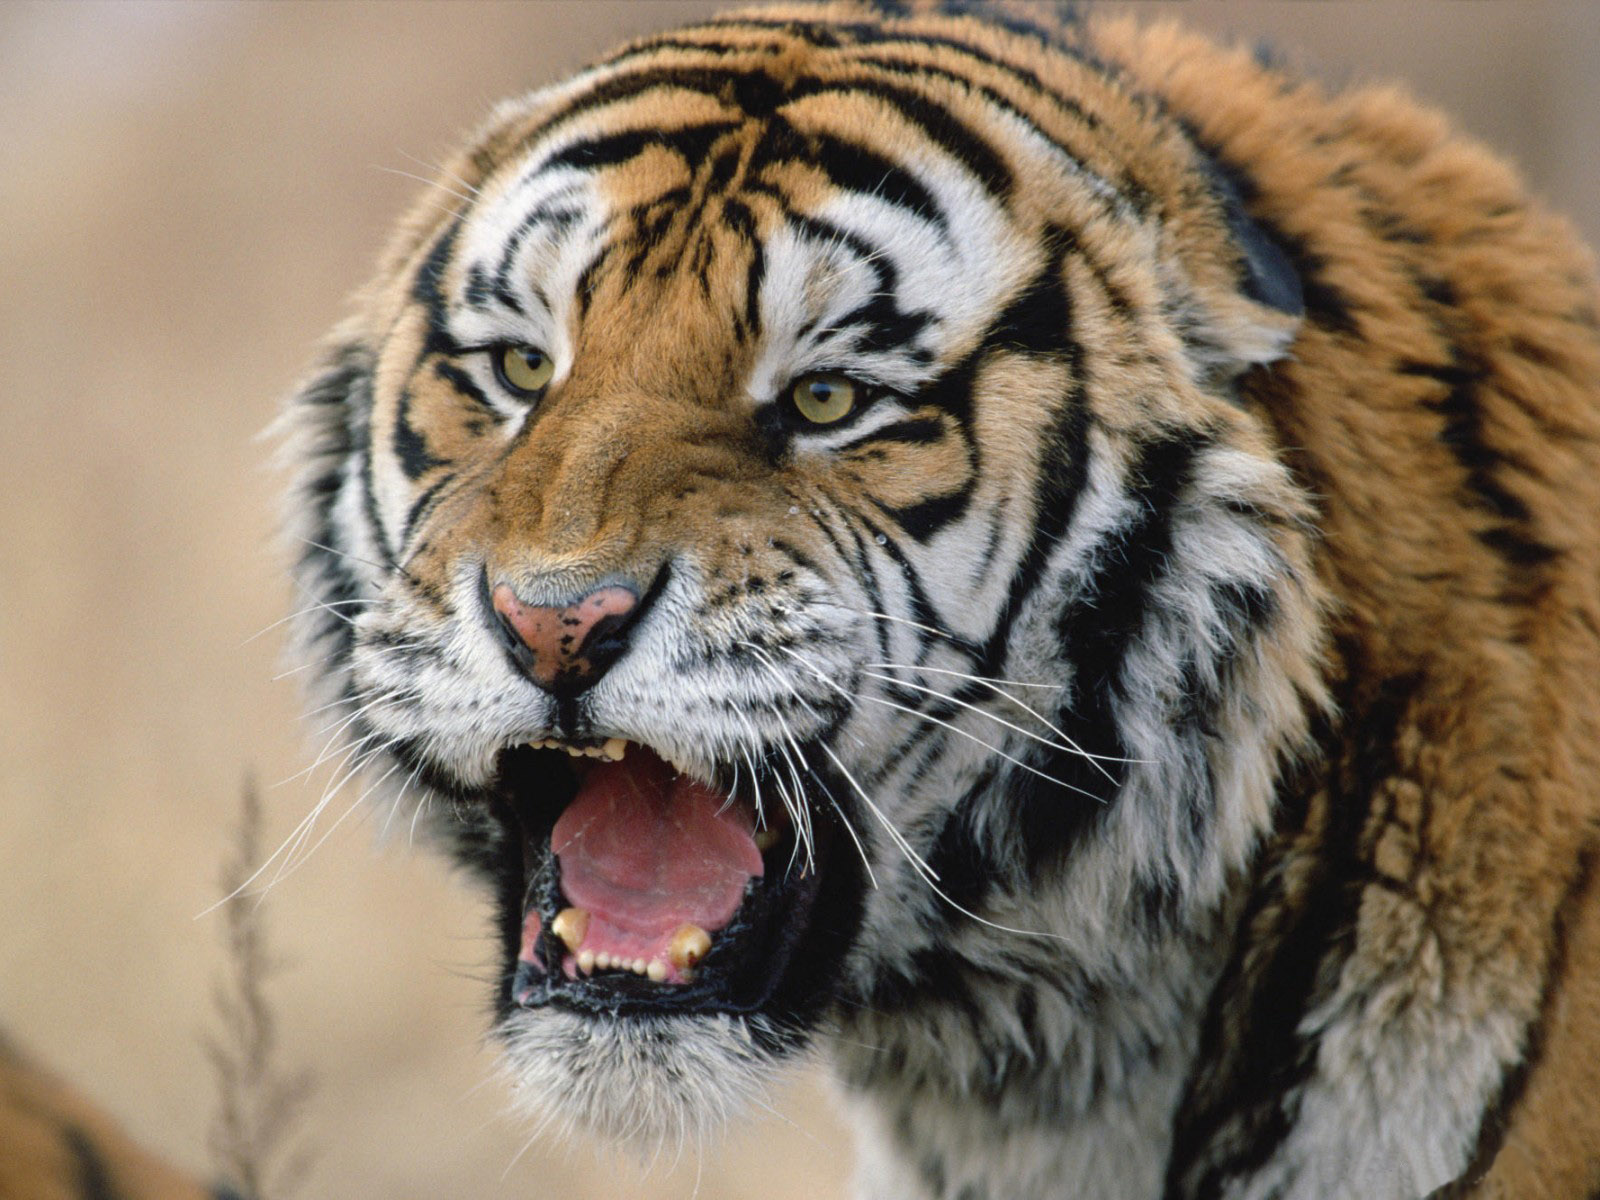 Tiger Wallpaper Android Apps on Google Play × Tiger